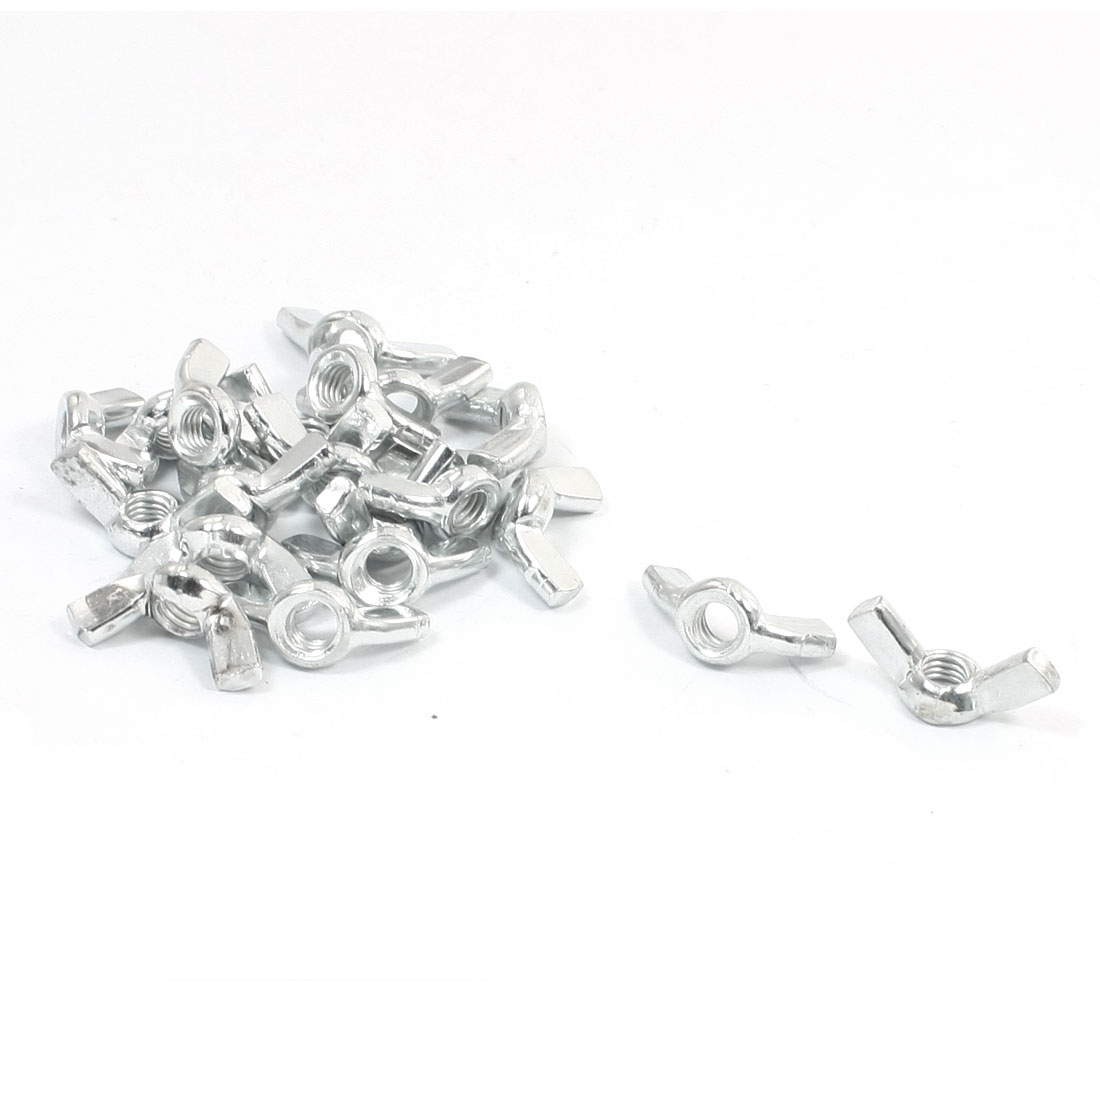 20pcs-Butterfly-Wing-Nuts-6mm-M6-Bright-Zinc-Coated-27-x-11-x-12mm